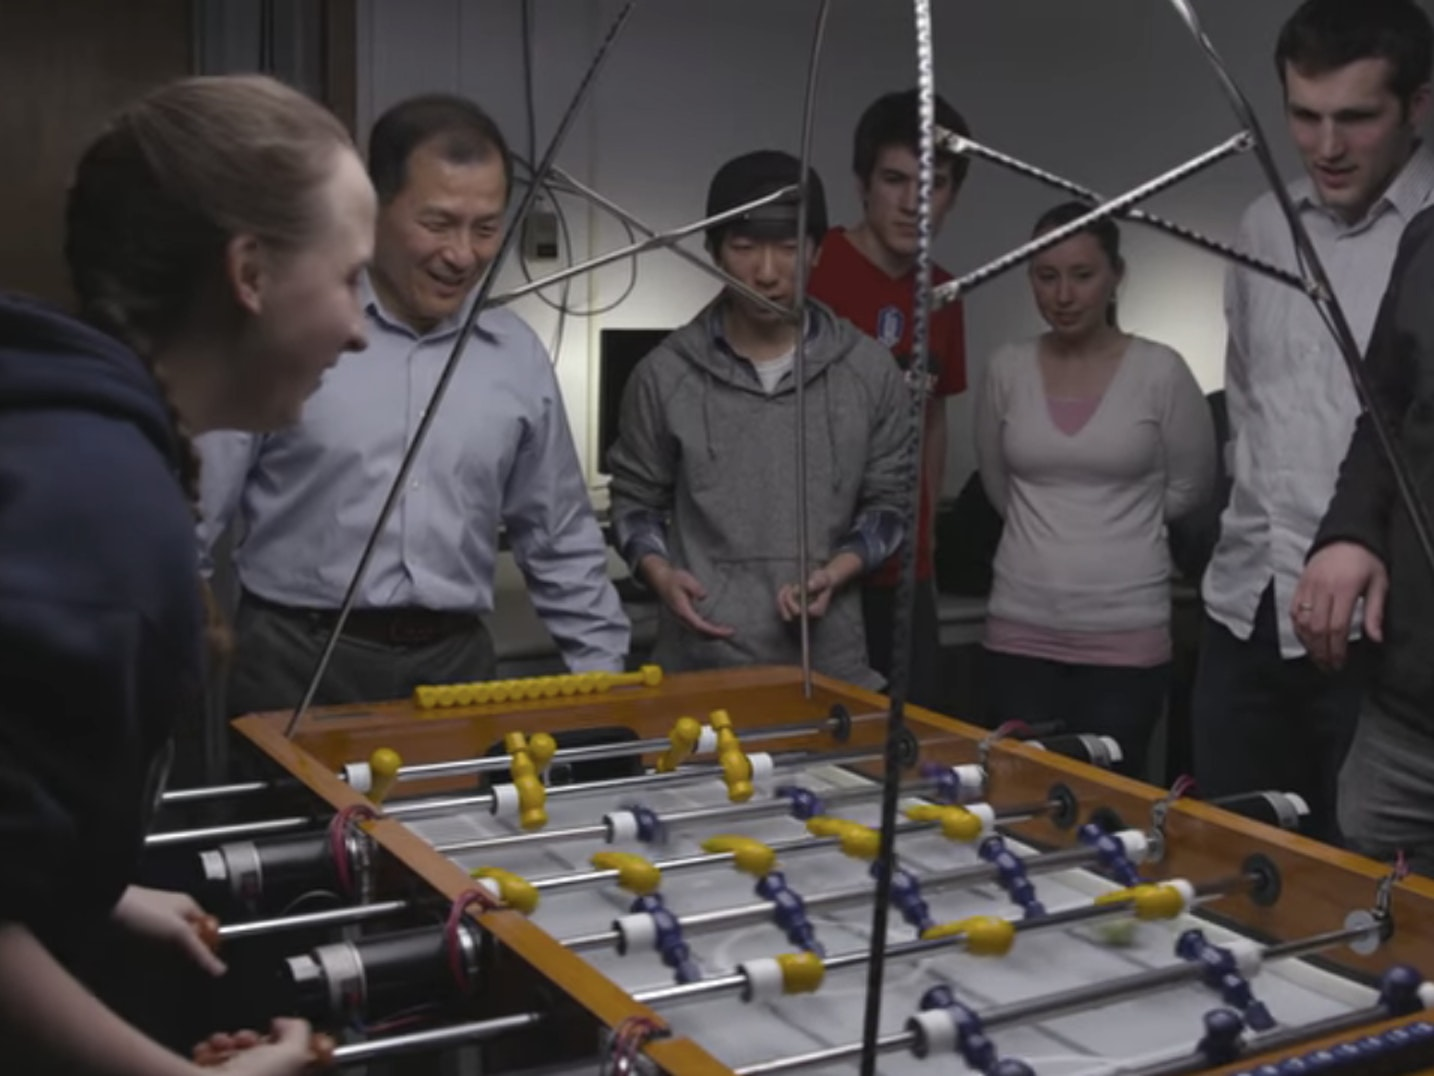 Watch BYU Students Lose to Their Own Foosball-Playing A.I. Robot